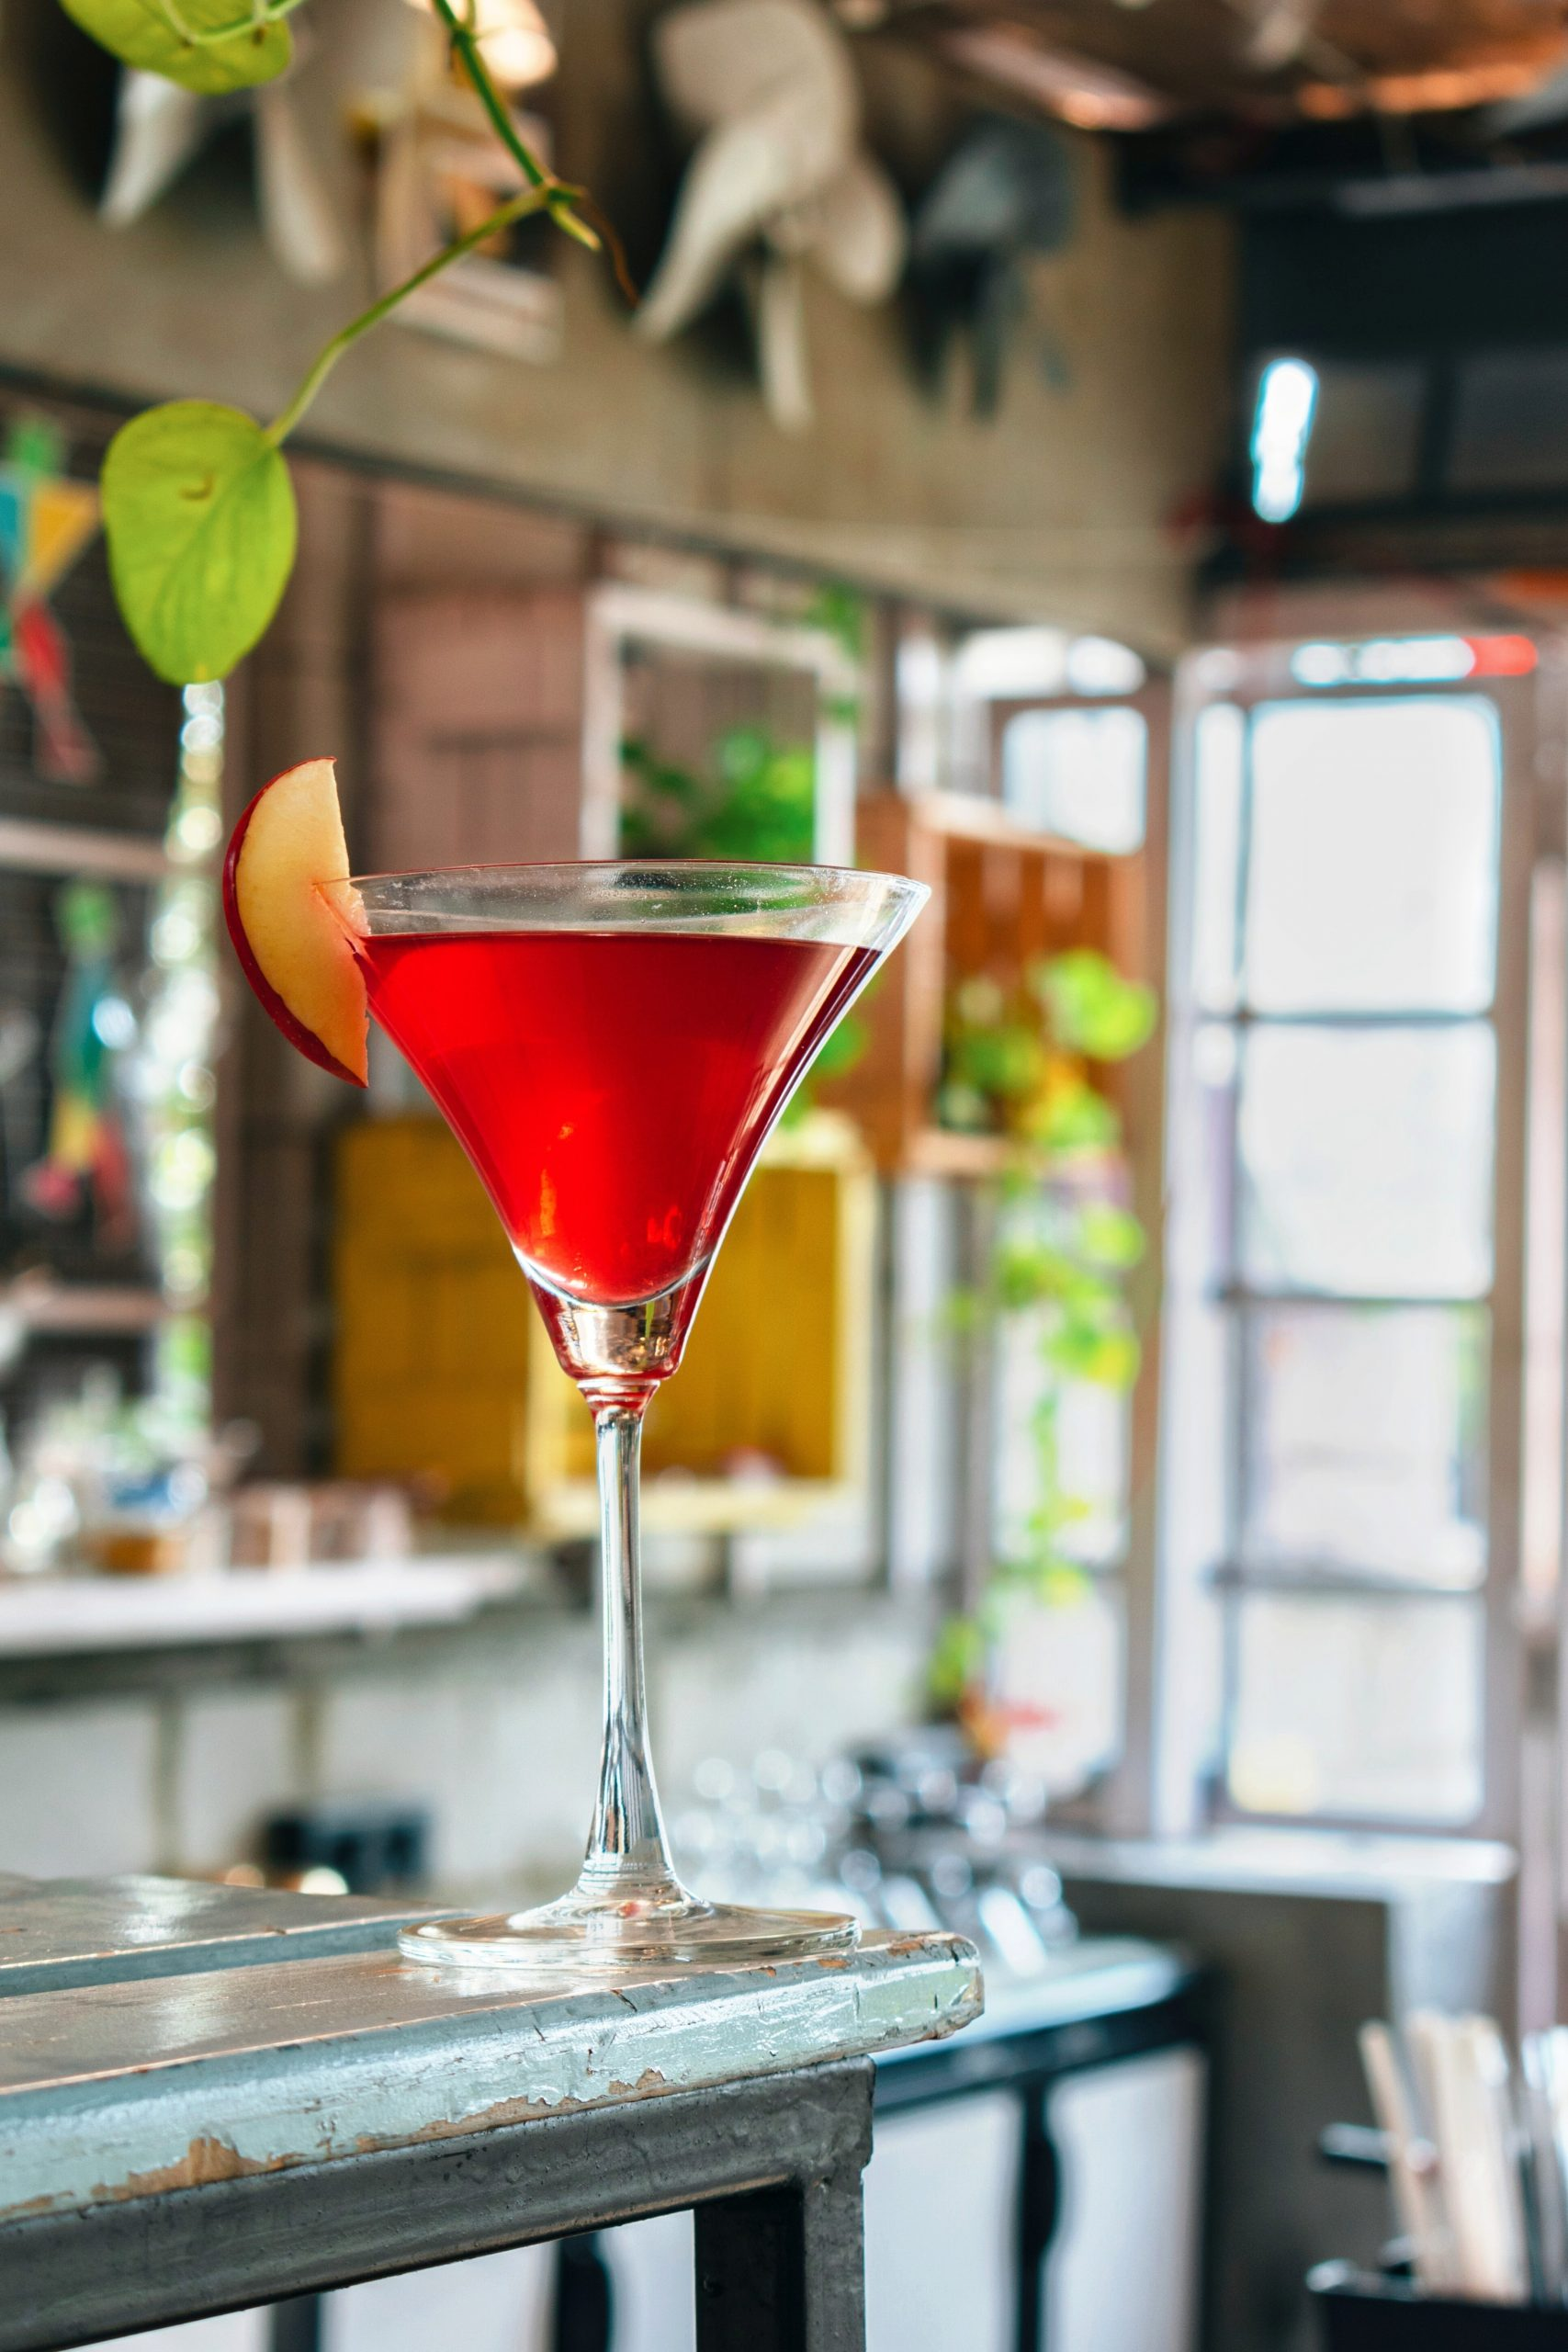 mocktail in a martini glass